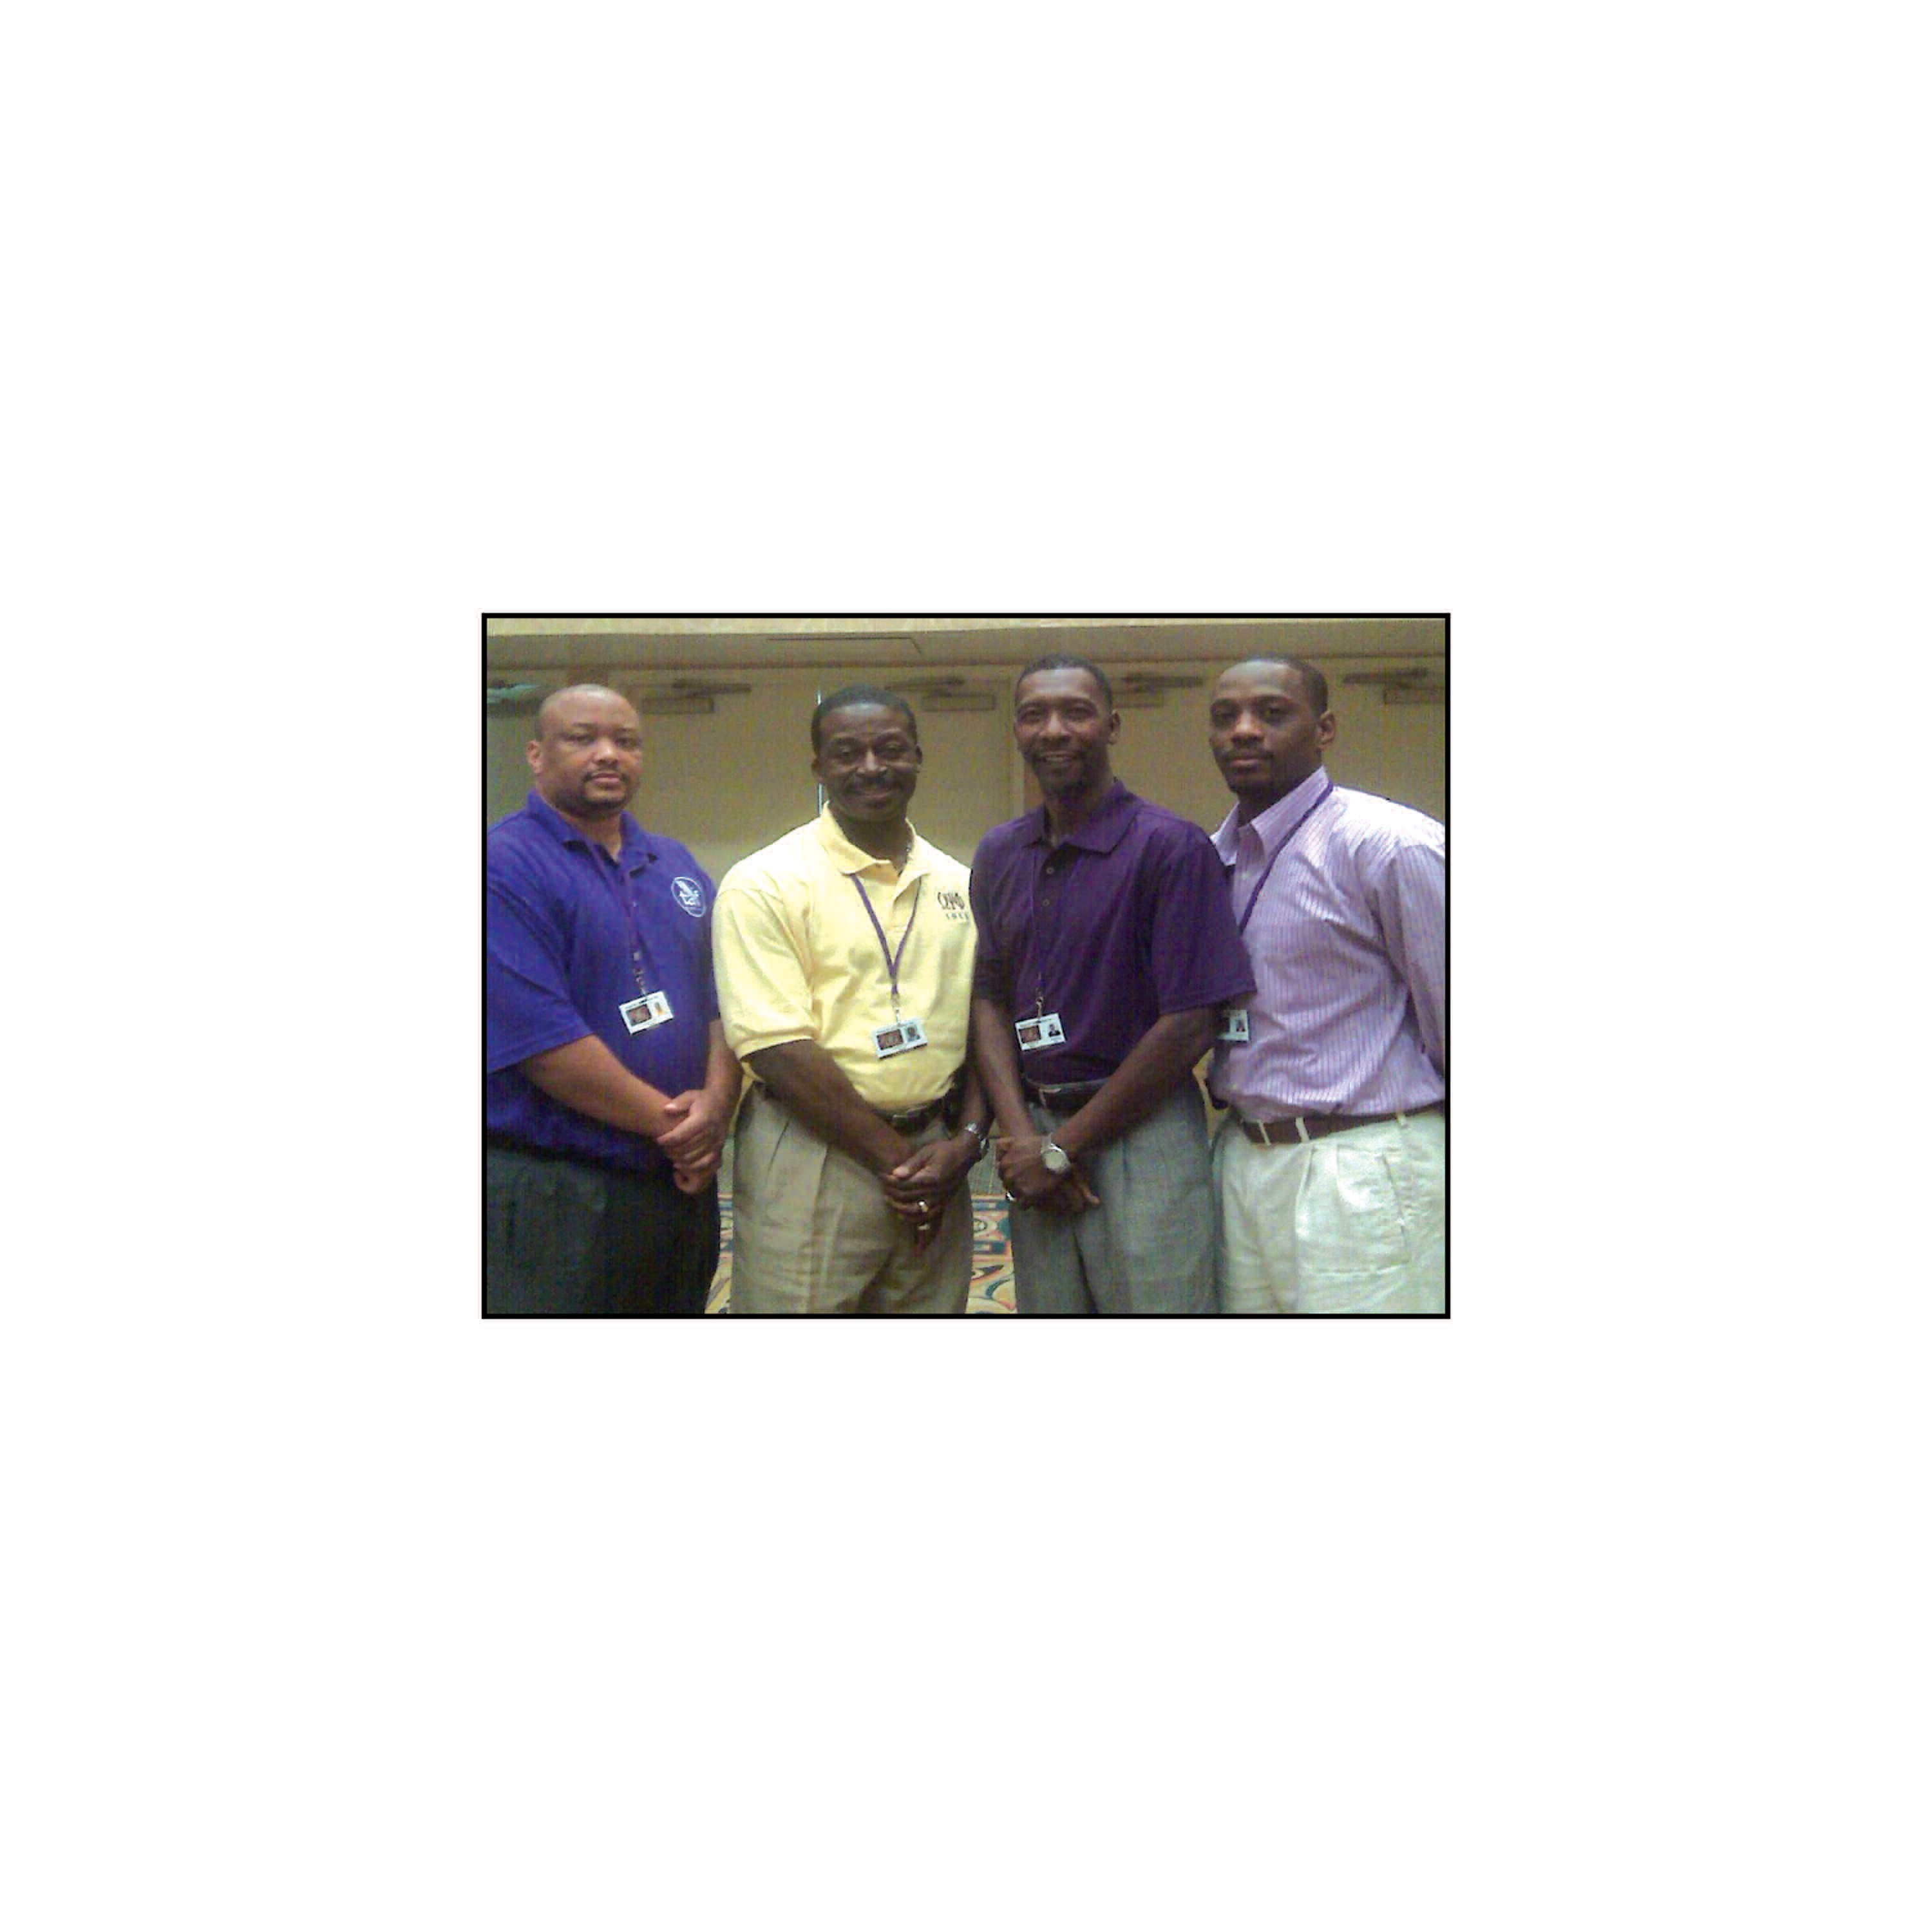 Mu Phi Chapter members, Omega Psi Phi Fraternity, Inc. pose for a picture during Leadership training in Las Vegas, Nevada.